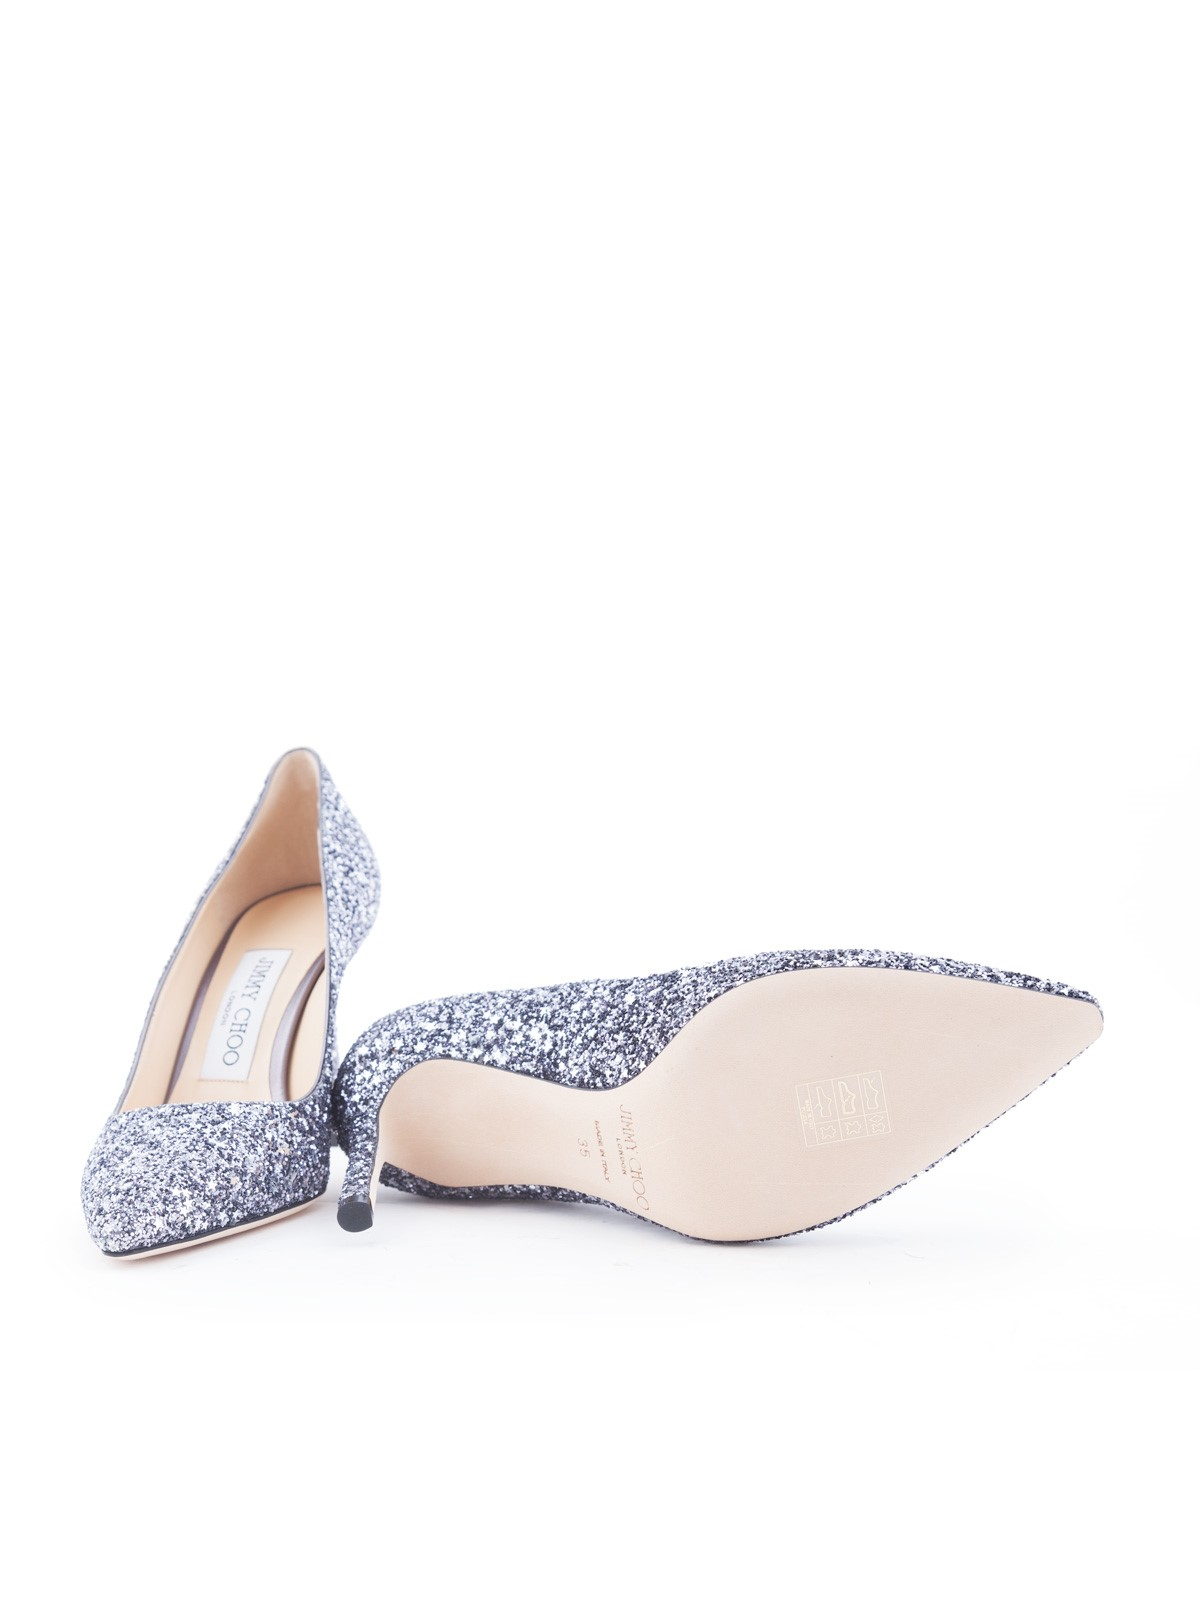 029f614e883 jimmy choo ROMY 85 GLITTER PUMPS available on montiboutique.com - 21567